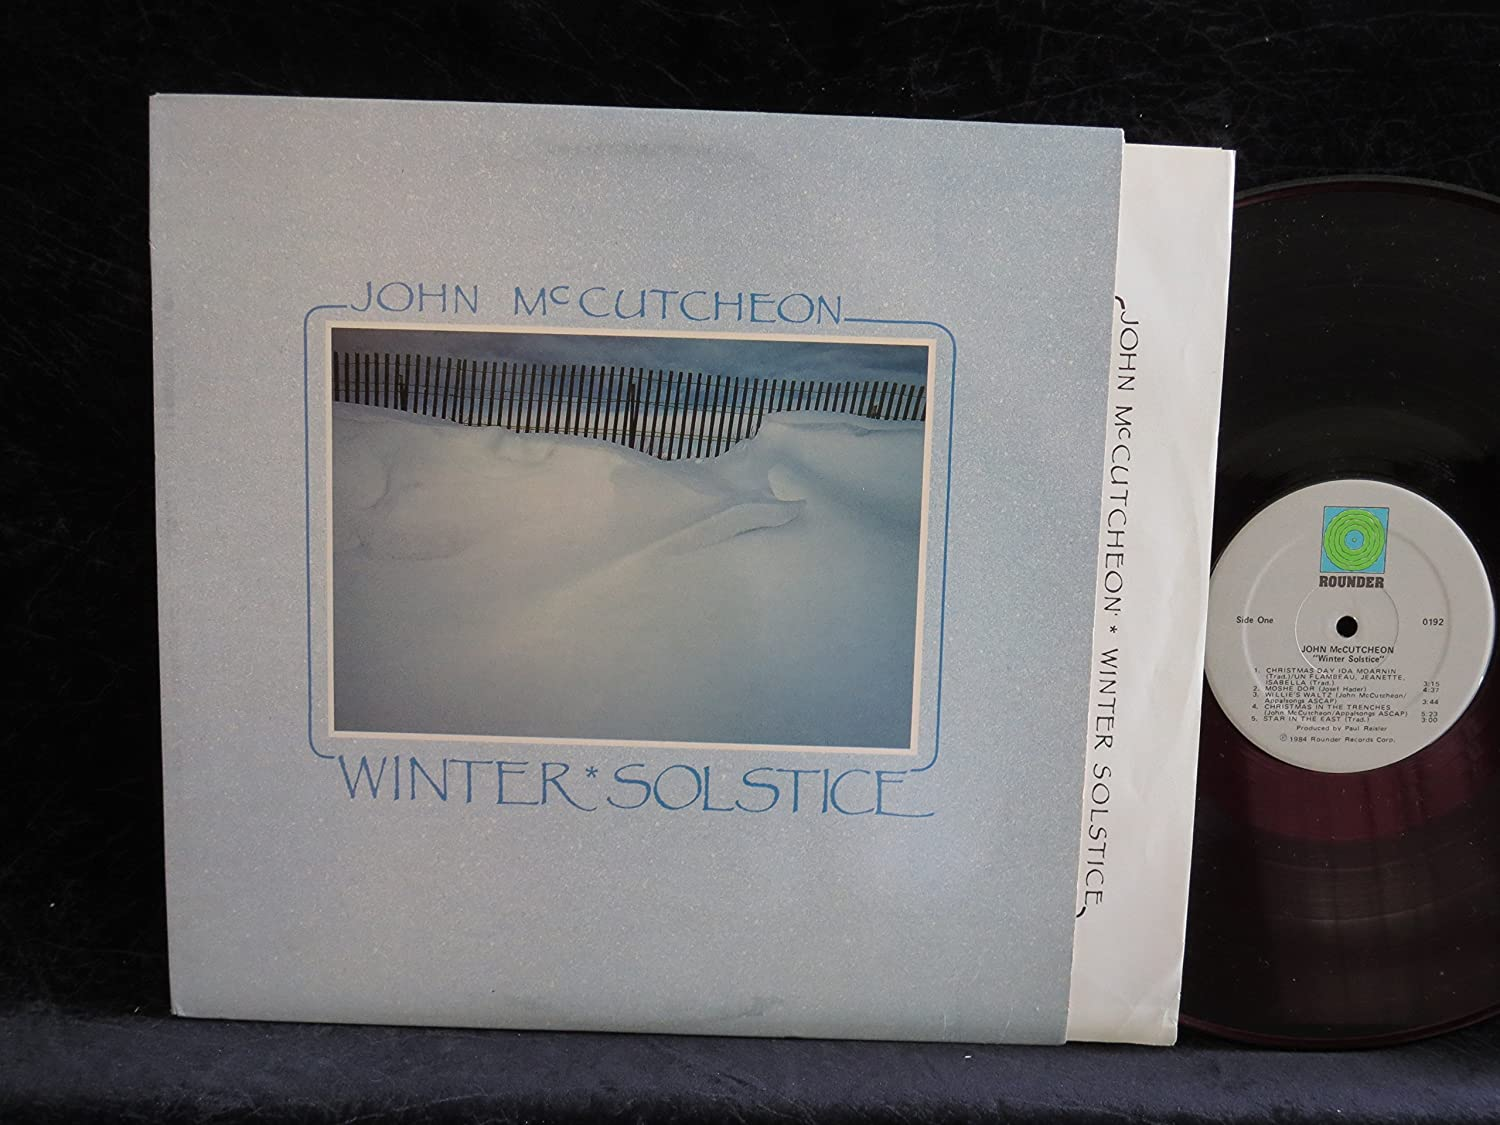 Winter Solstice (USA 1st pressing vinyl LP) - Amazon.com Music